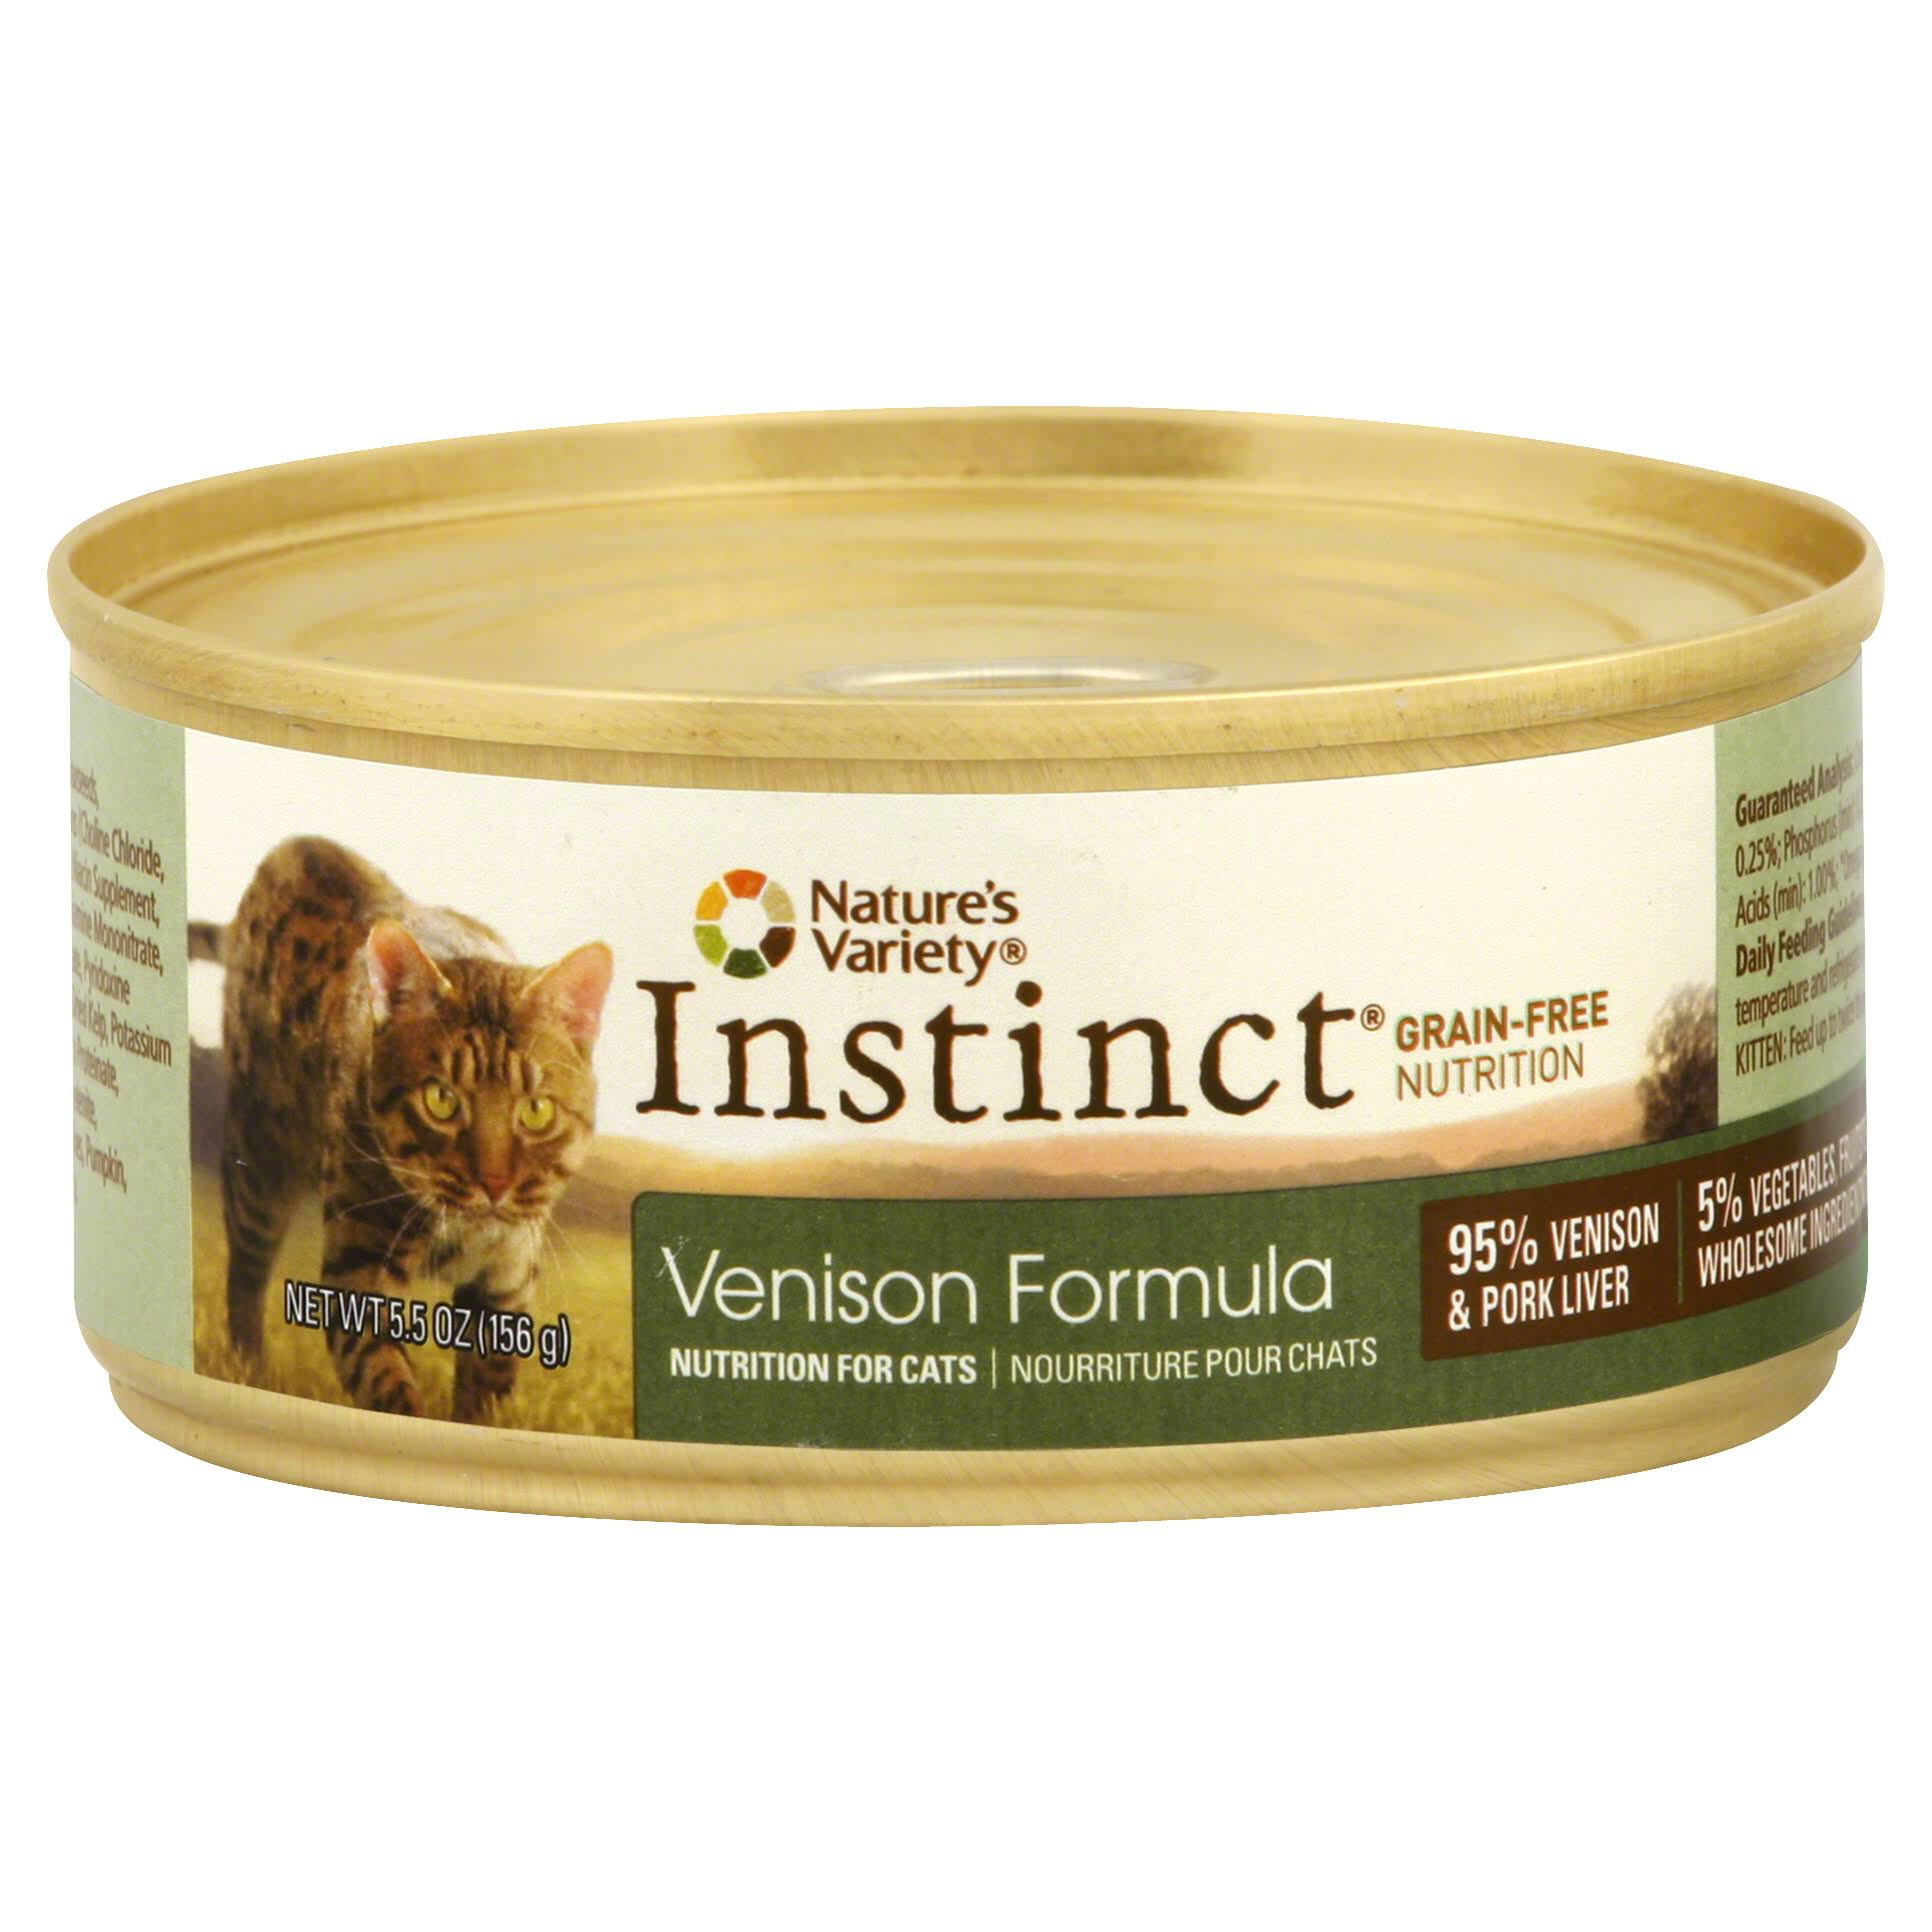 Nature's Variety Instinct Cat Food Venison Formula